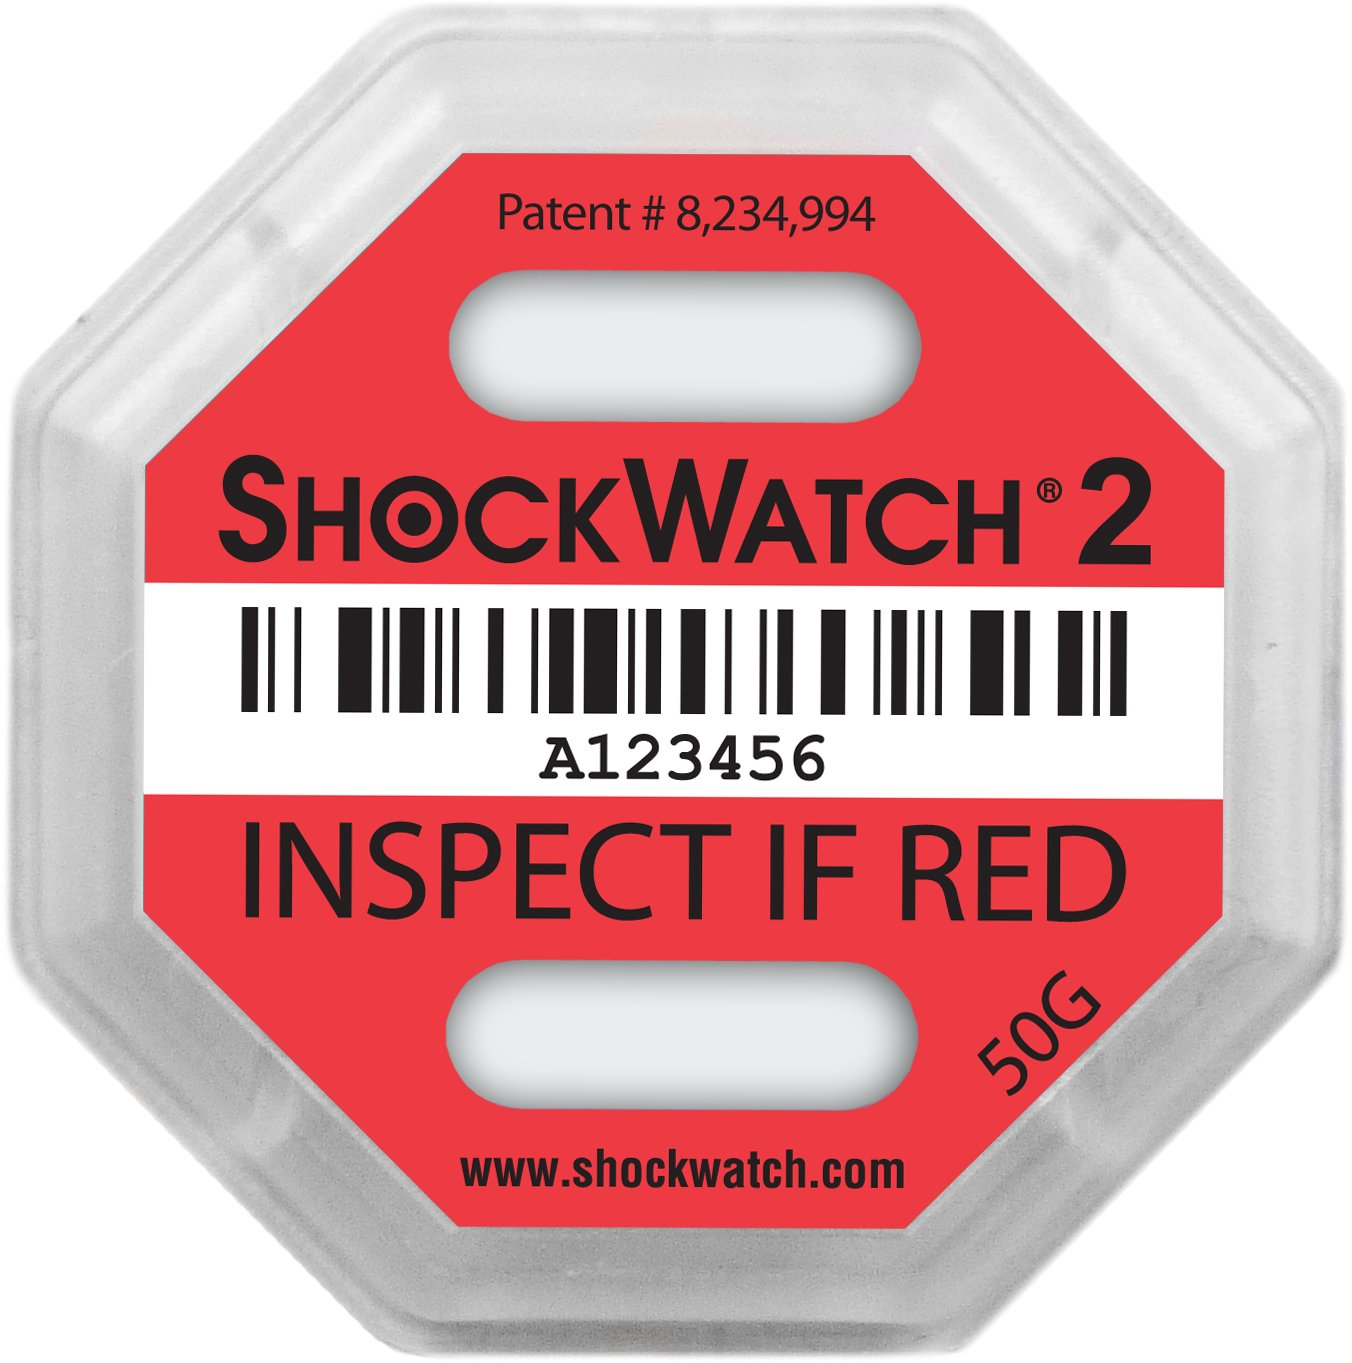 Shockwatch 2 50G Impact Indicator 20 units